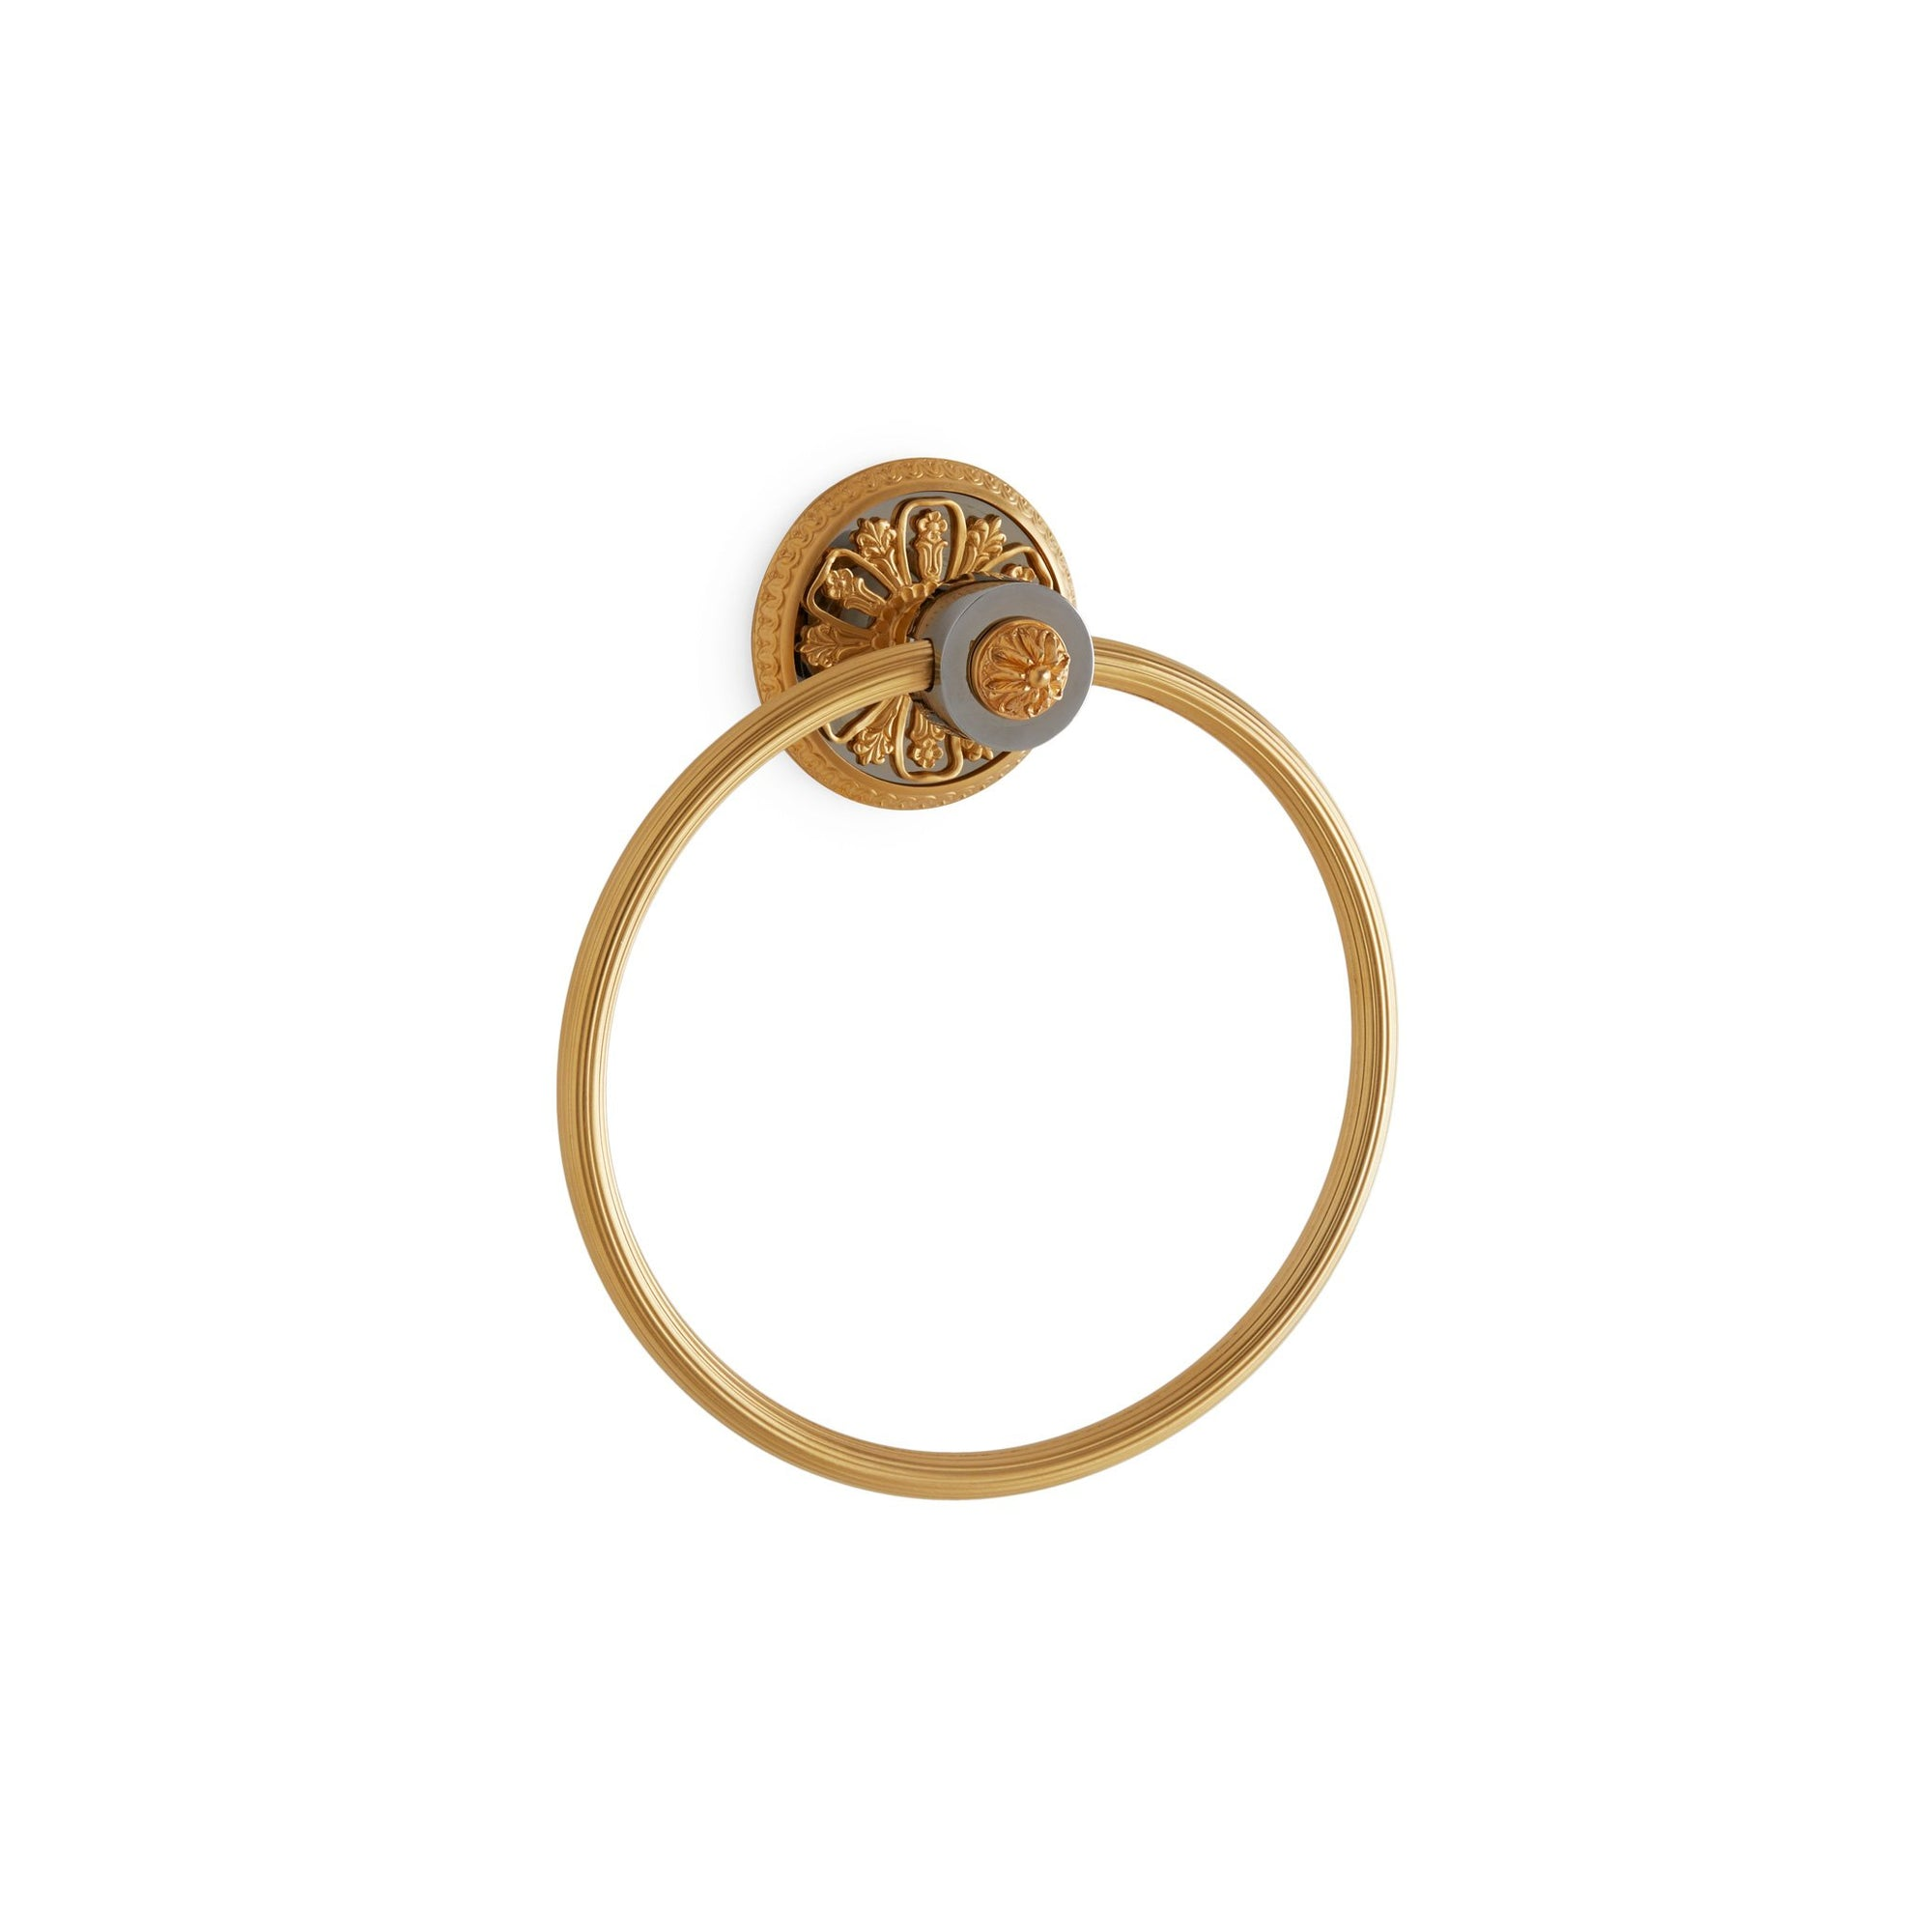 3425-GP/CP Sherle Wagner International Filigree Towel Ring in Gold Plate and Polished Chrome metal finish